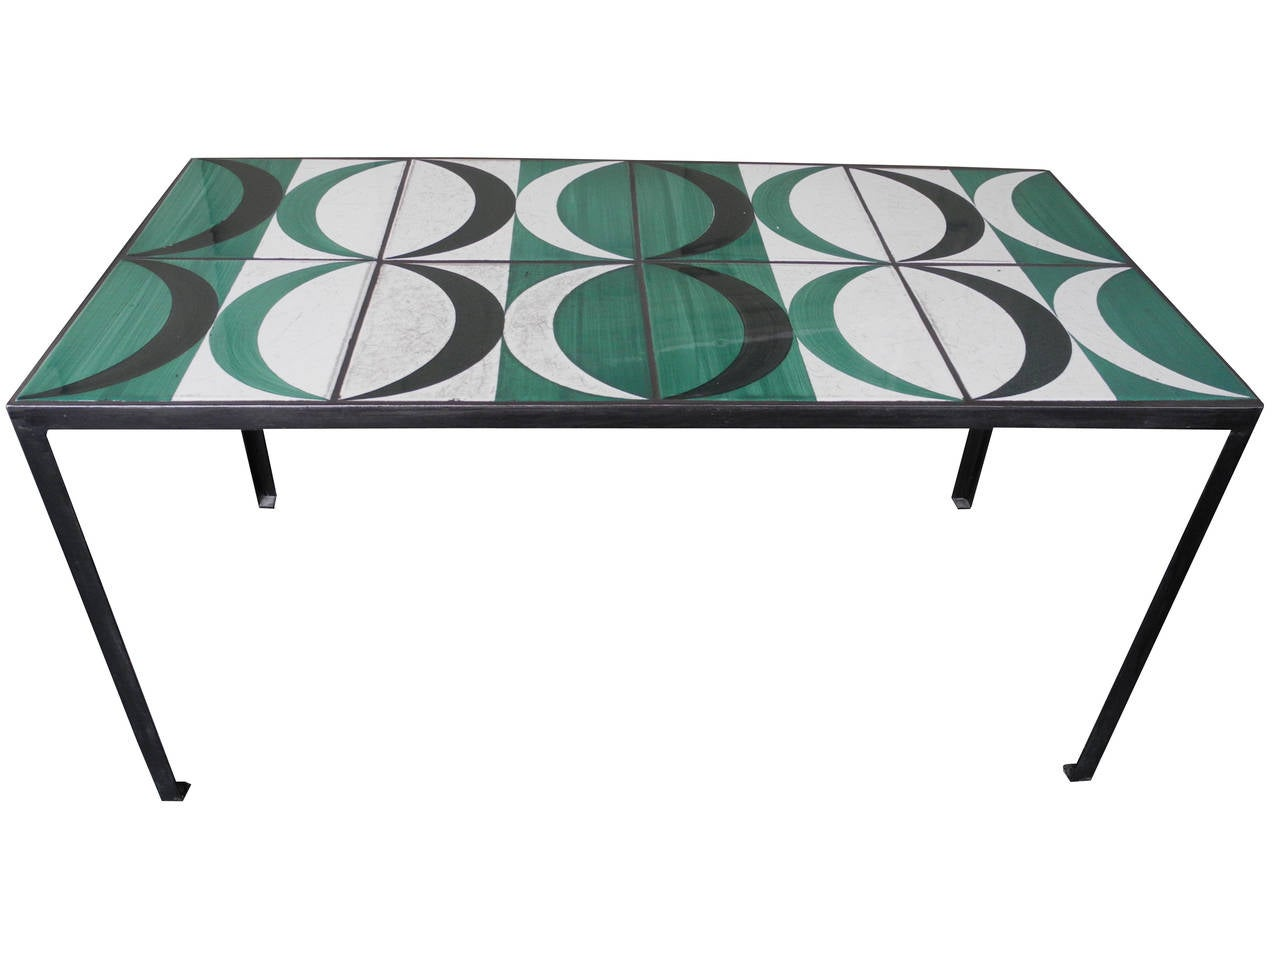 Modern Coffee Table Side Table With Original Gio Ponti Tiles Italy At 1stdibs